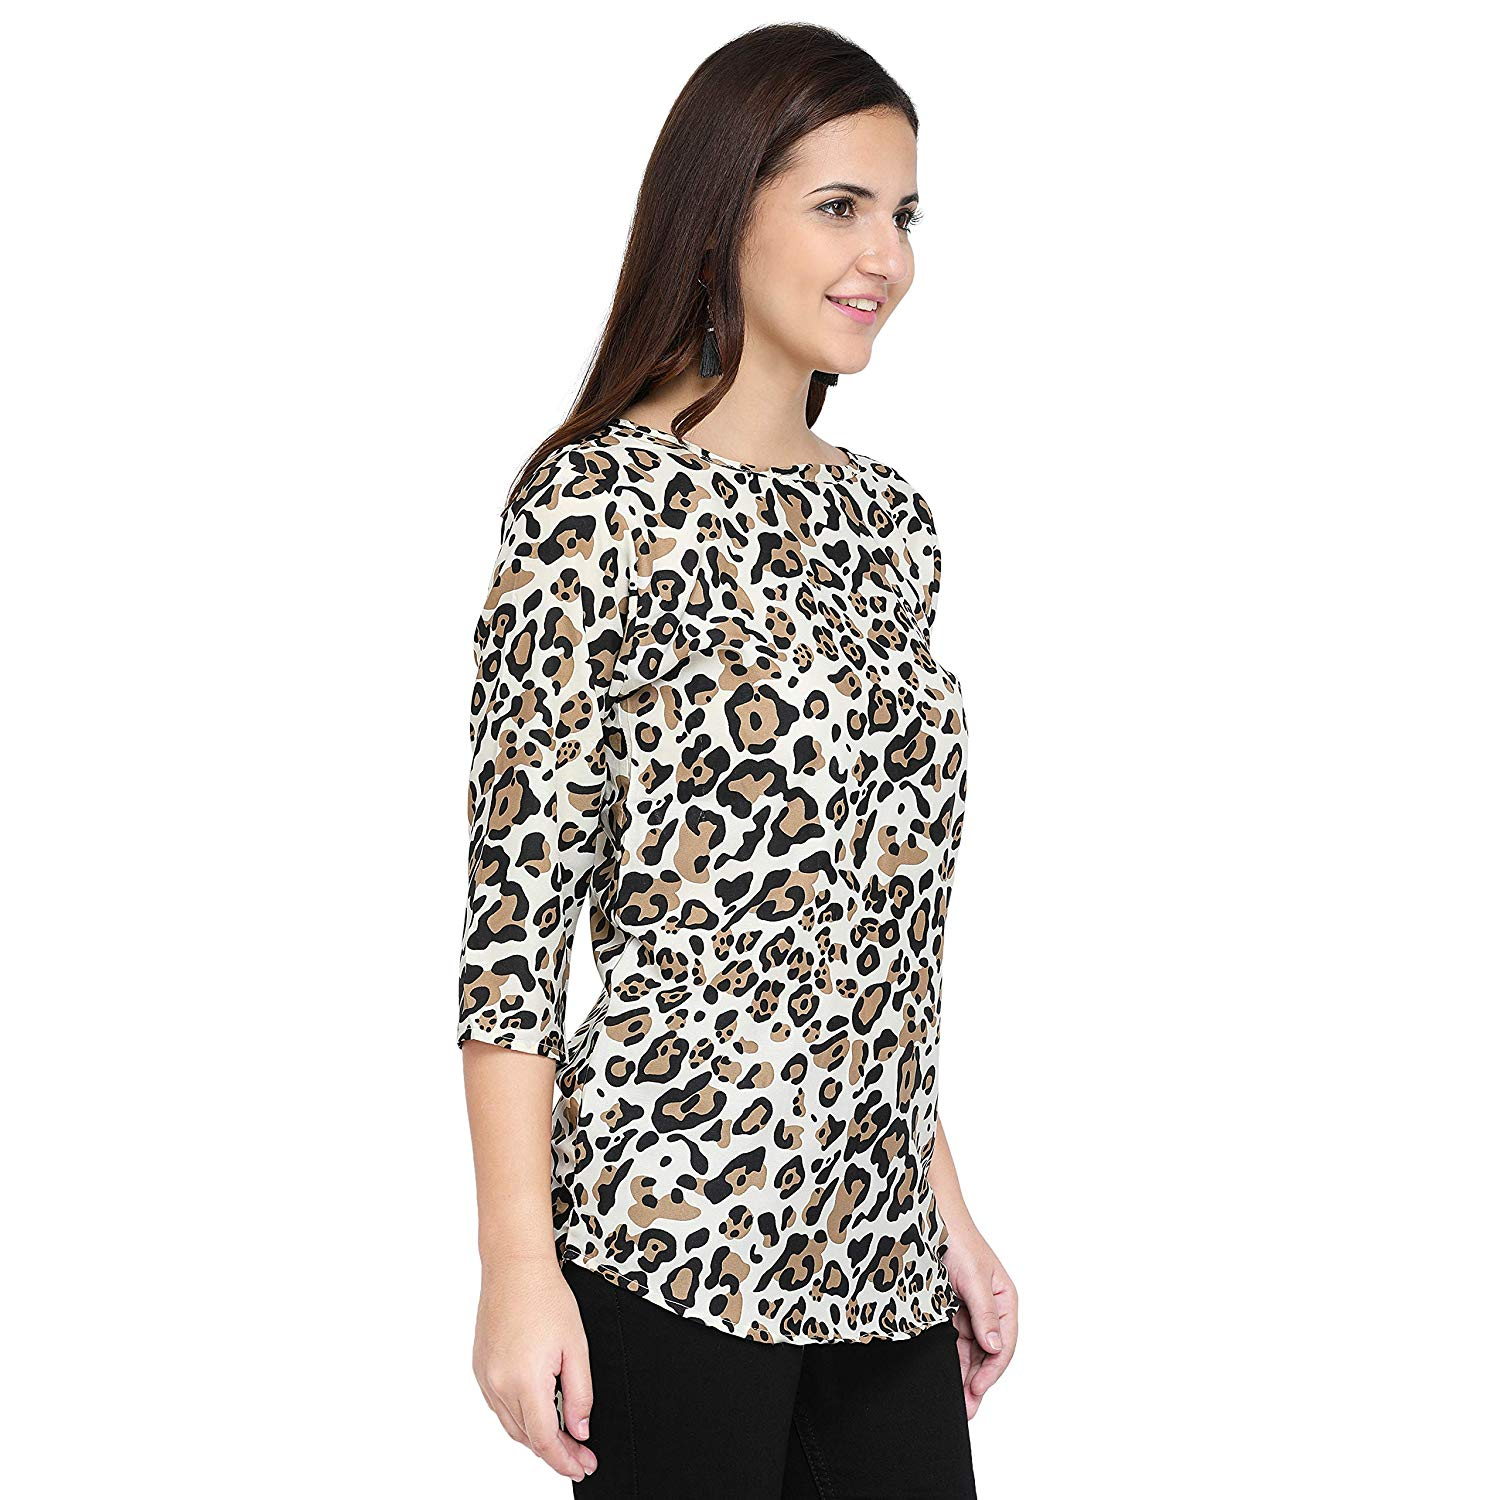 9bb0d055ce039e ... Plain Diamond Creap Top For Daily wear Stylish Casual and Western Wear  Women/Girls Top. By Online Retail Market